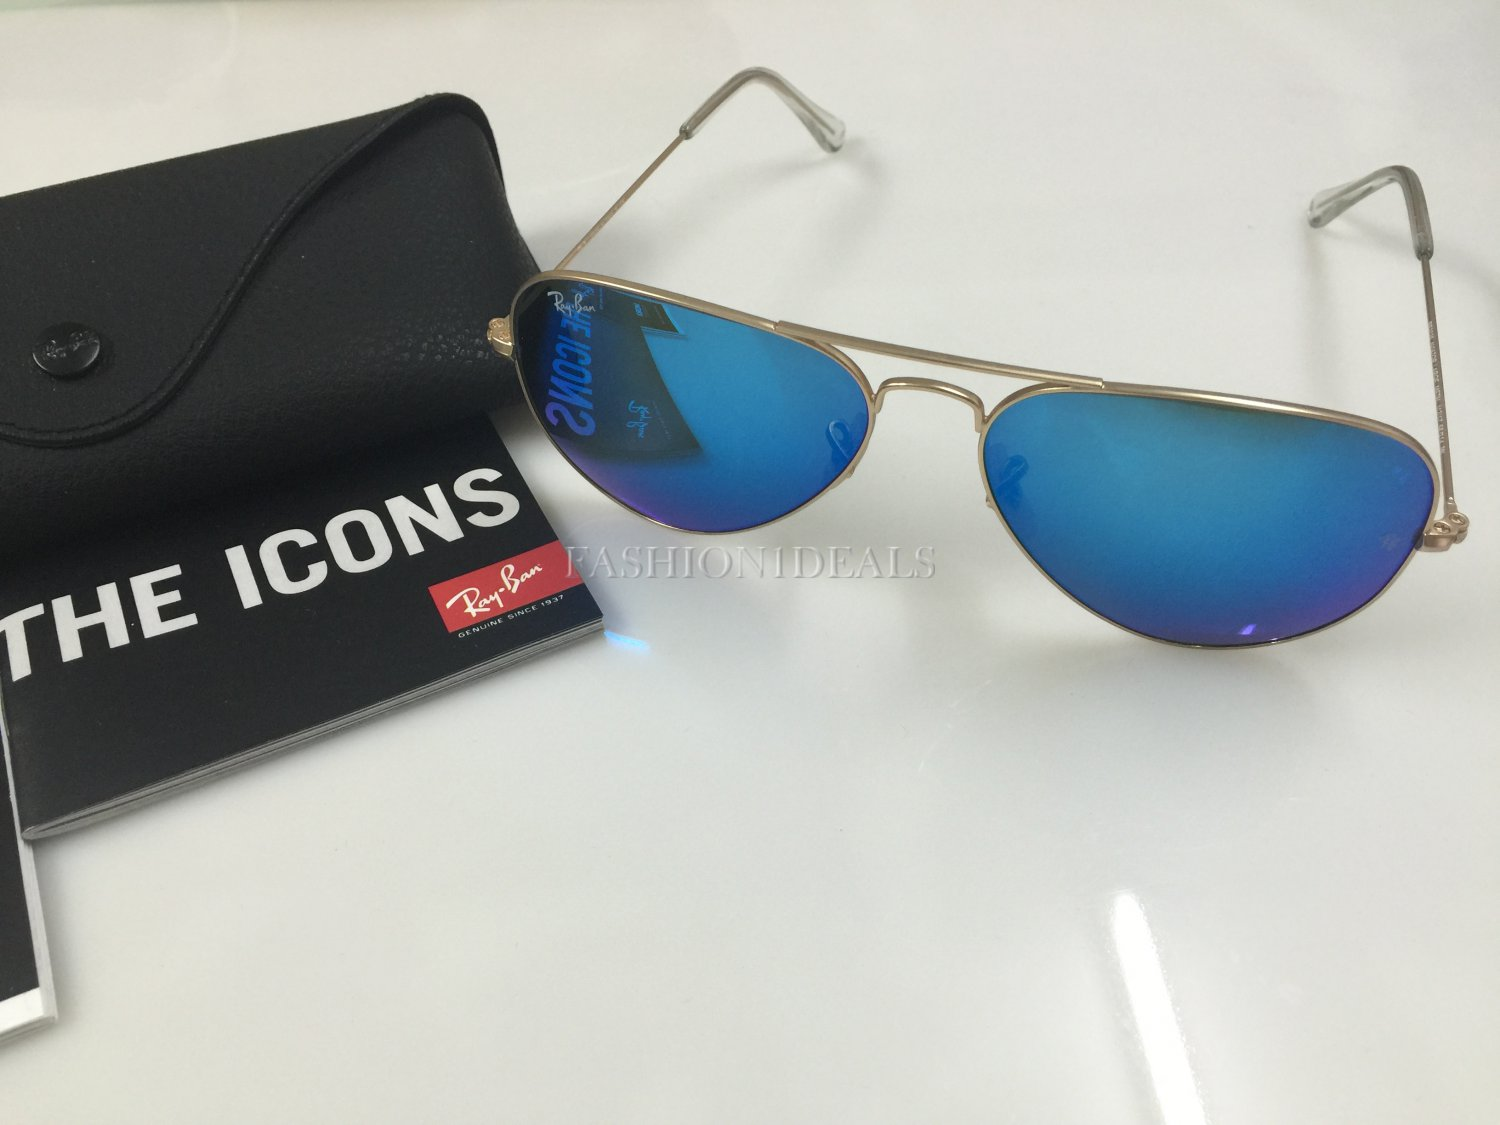 100% AUTHENTIC 3025 112/17 BLUE MIRROR GOLD FRAME RAY BAN LARGE AVIATOR SUNGLASSES